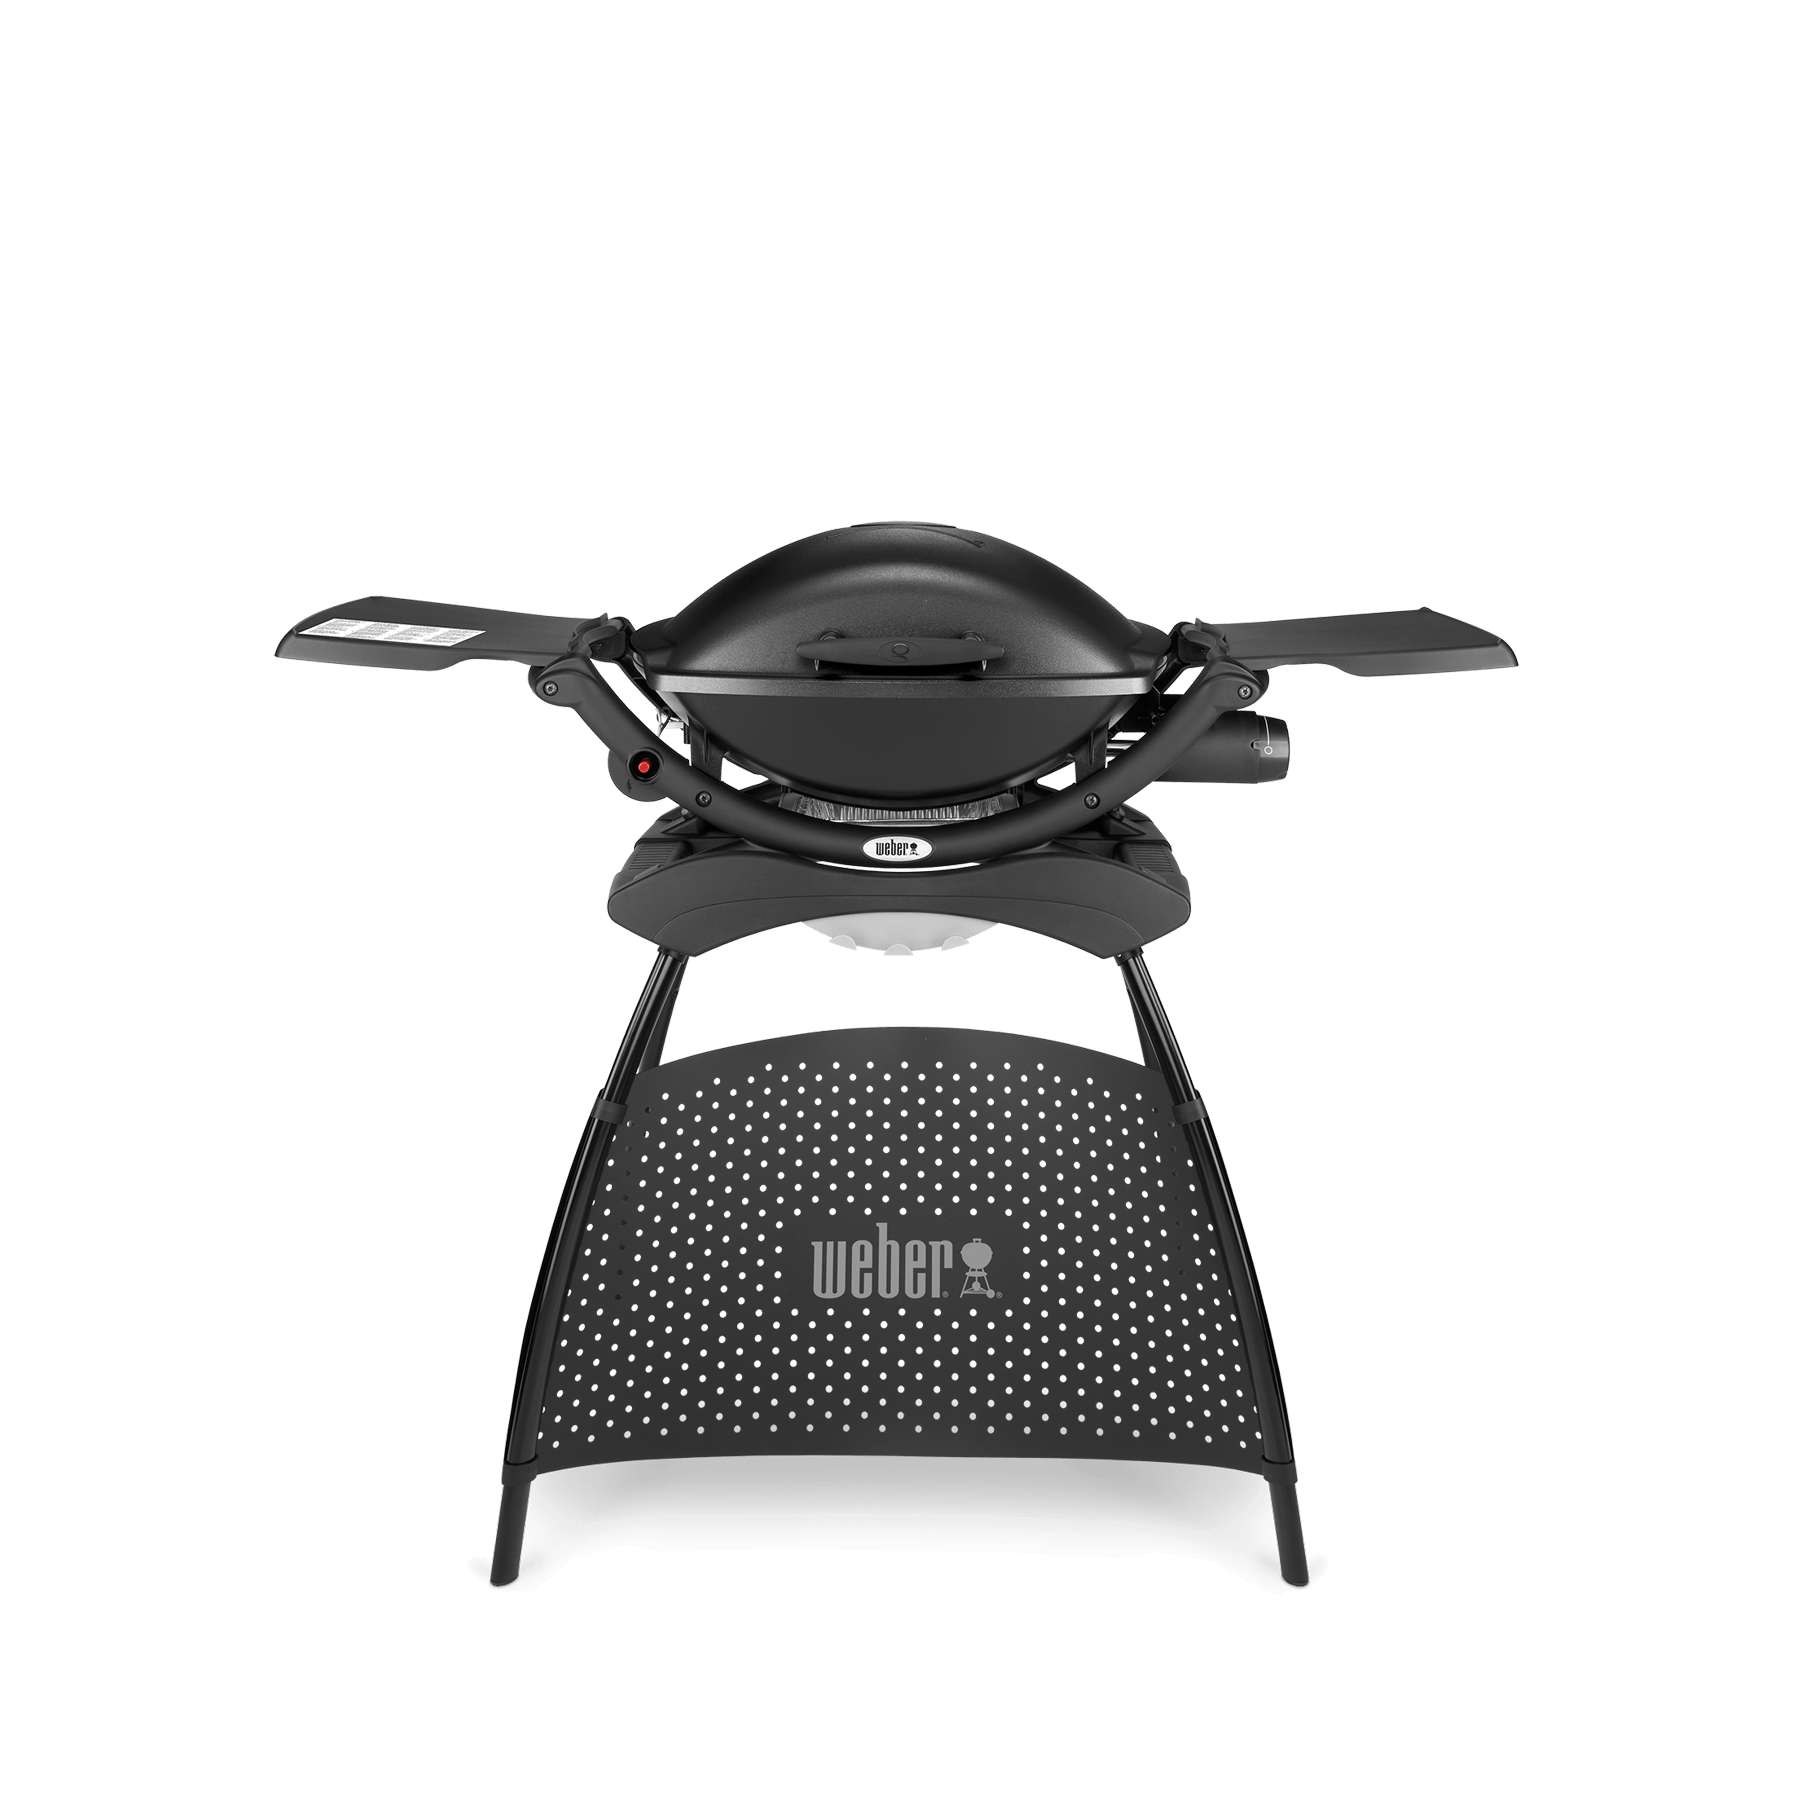 Weber® Q 2000 Gasbarbecue met stand